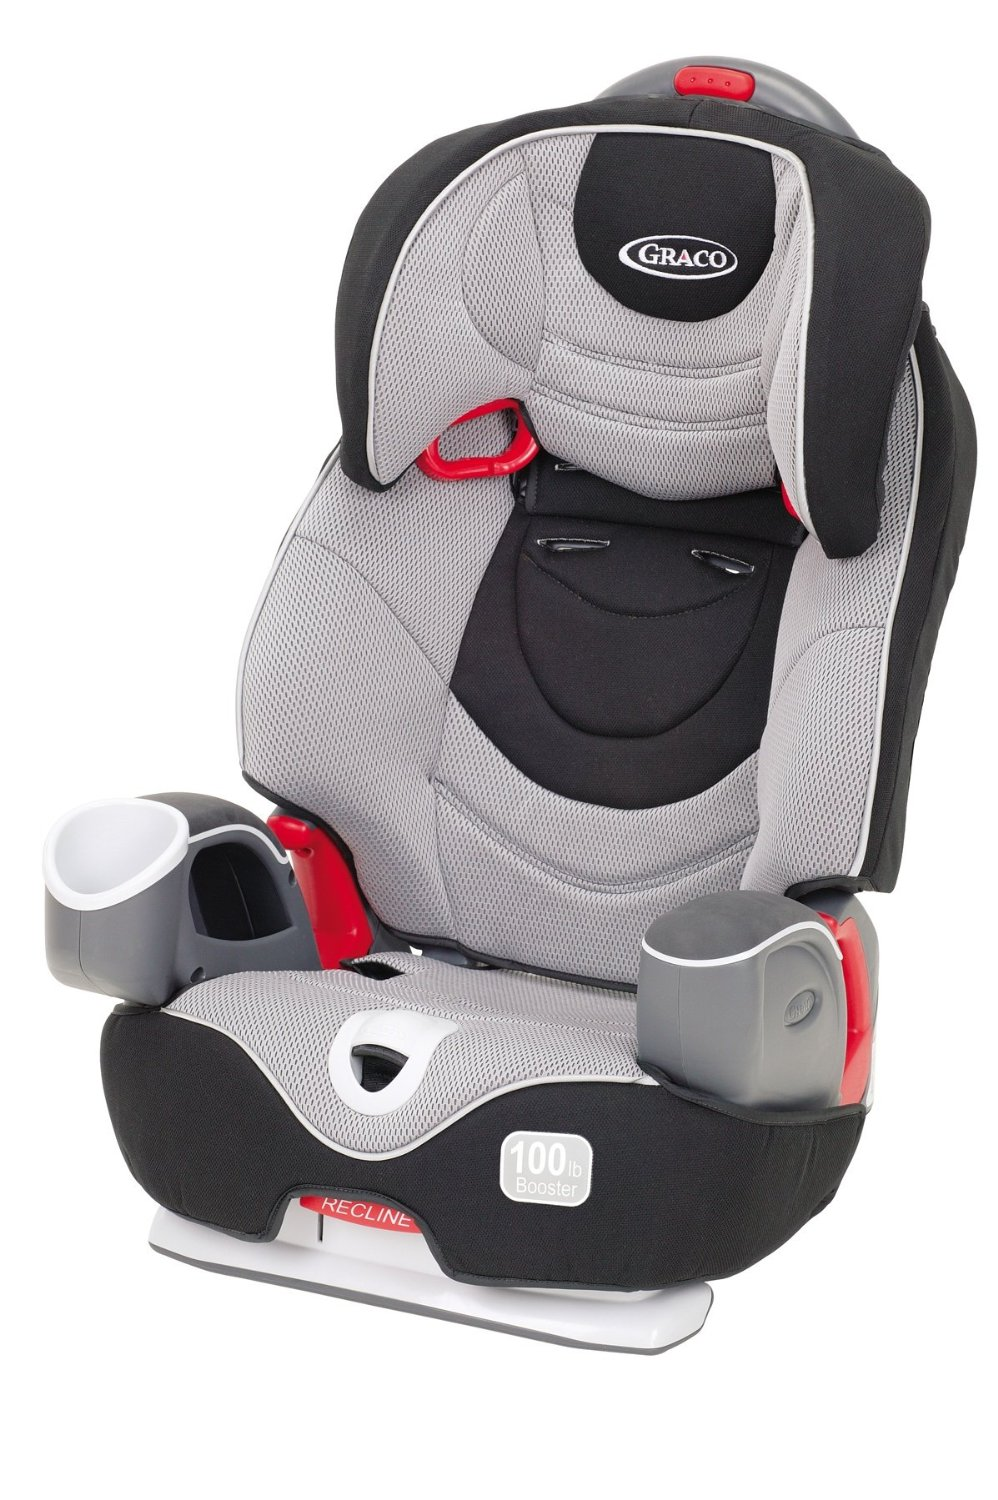 Graco Nautilus 3-in-1 Car Seat - Full Review & Comparison 2016